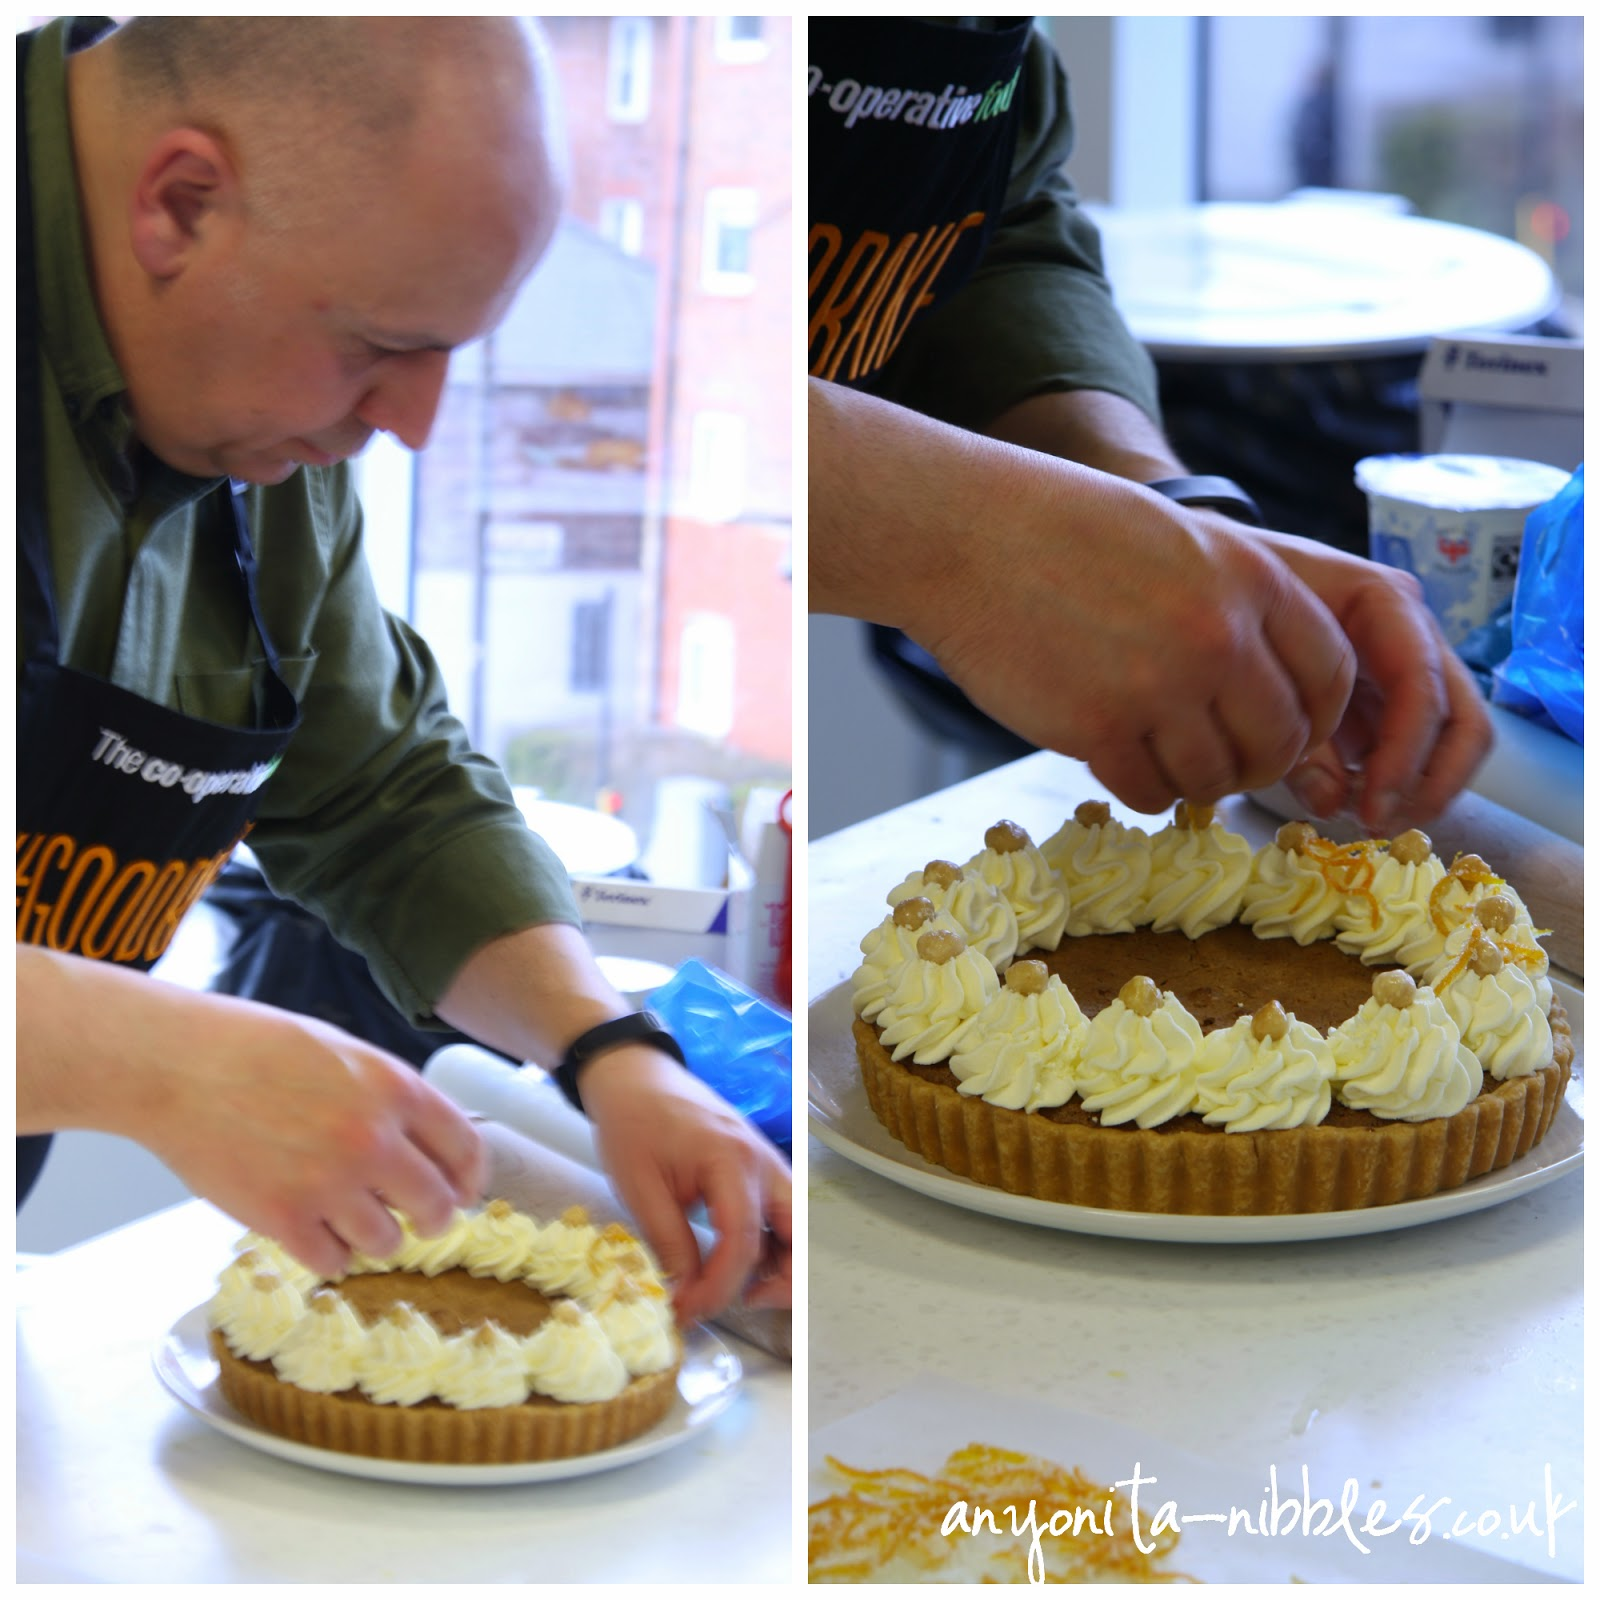 Luis Troyano finishing his chocolate praline tart | Anyonita-nibbles.co.uk